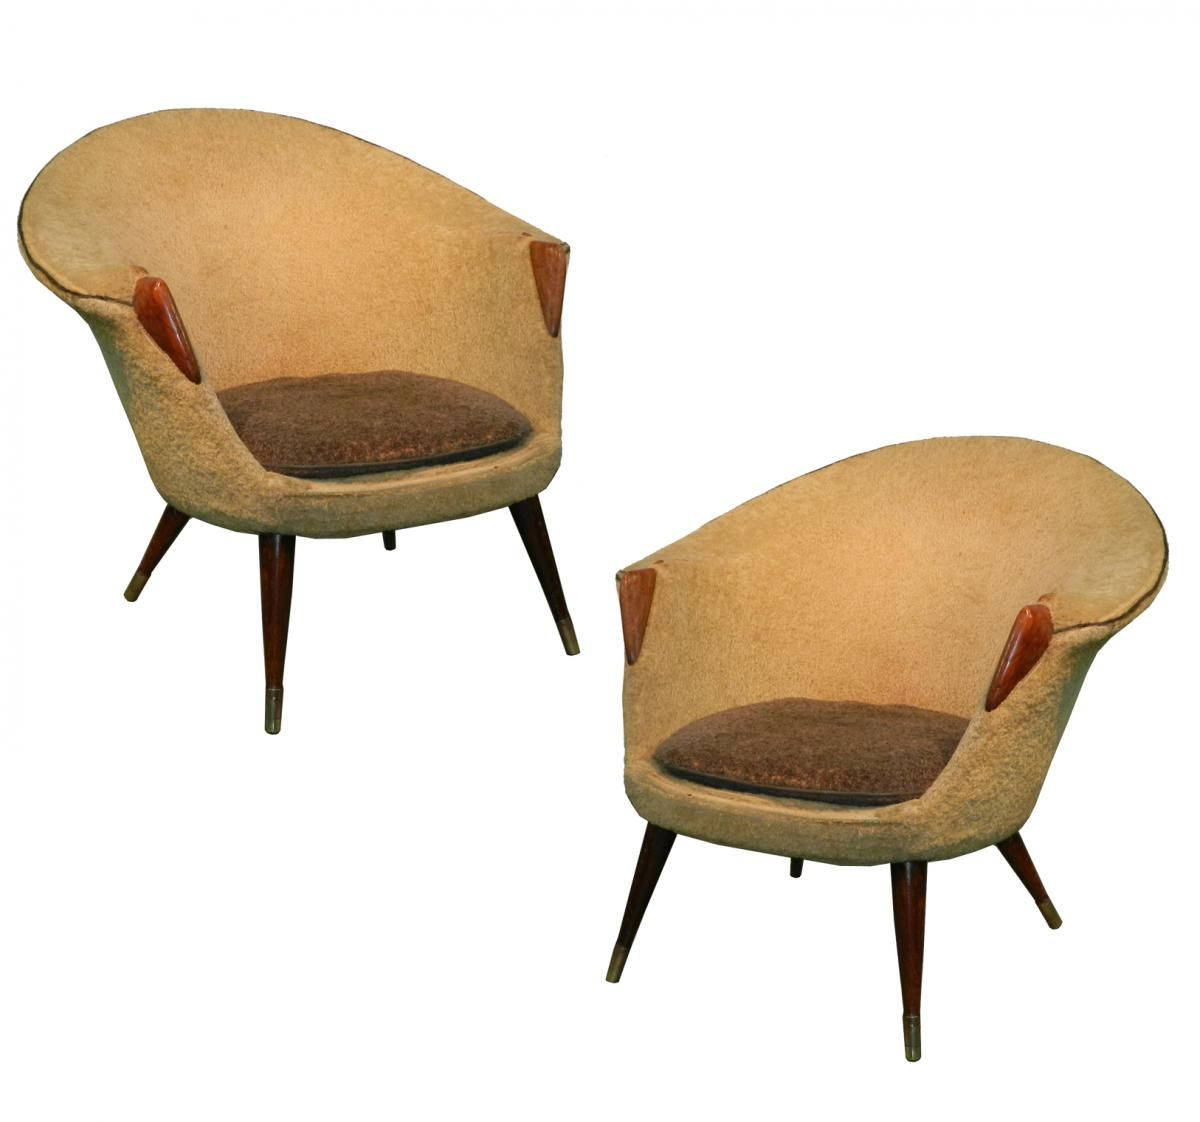 Scandinavian armchairs 1950s set of 2 for sale at pamono for 2 armchairs for sale